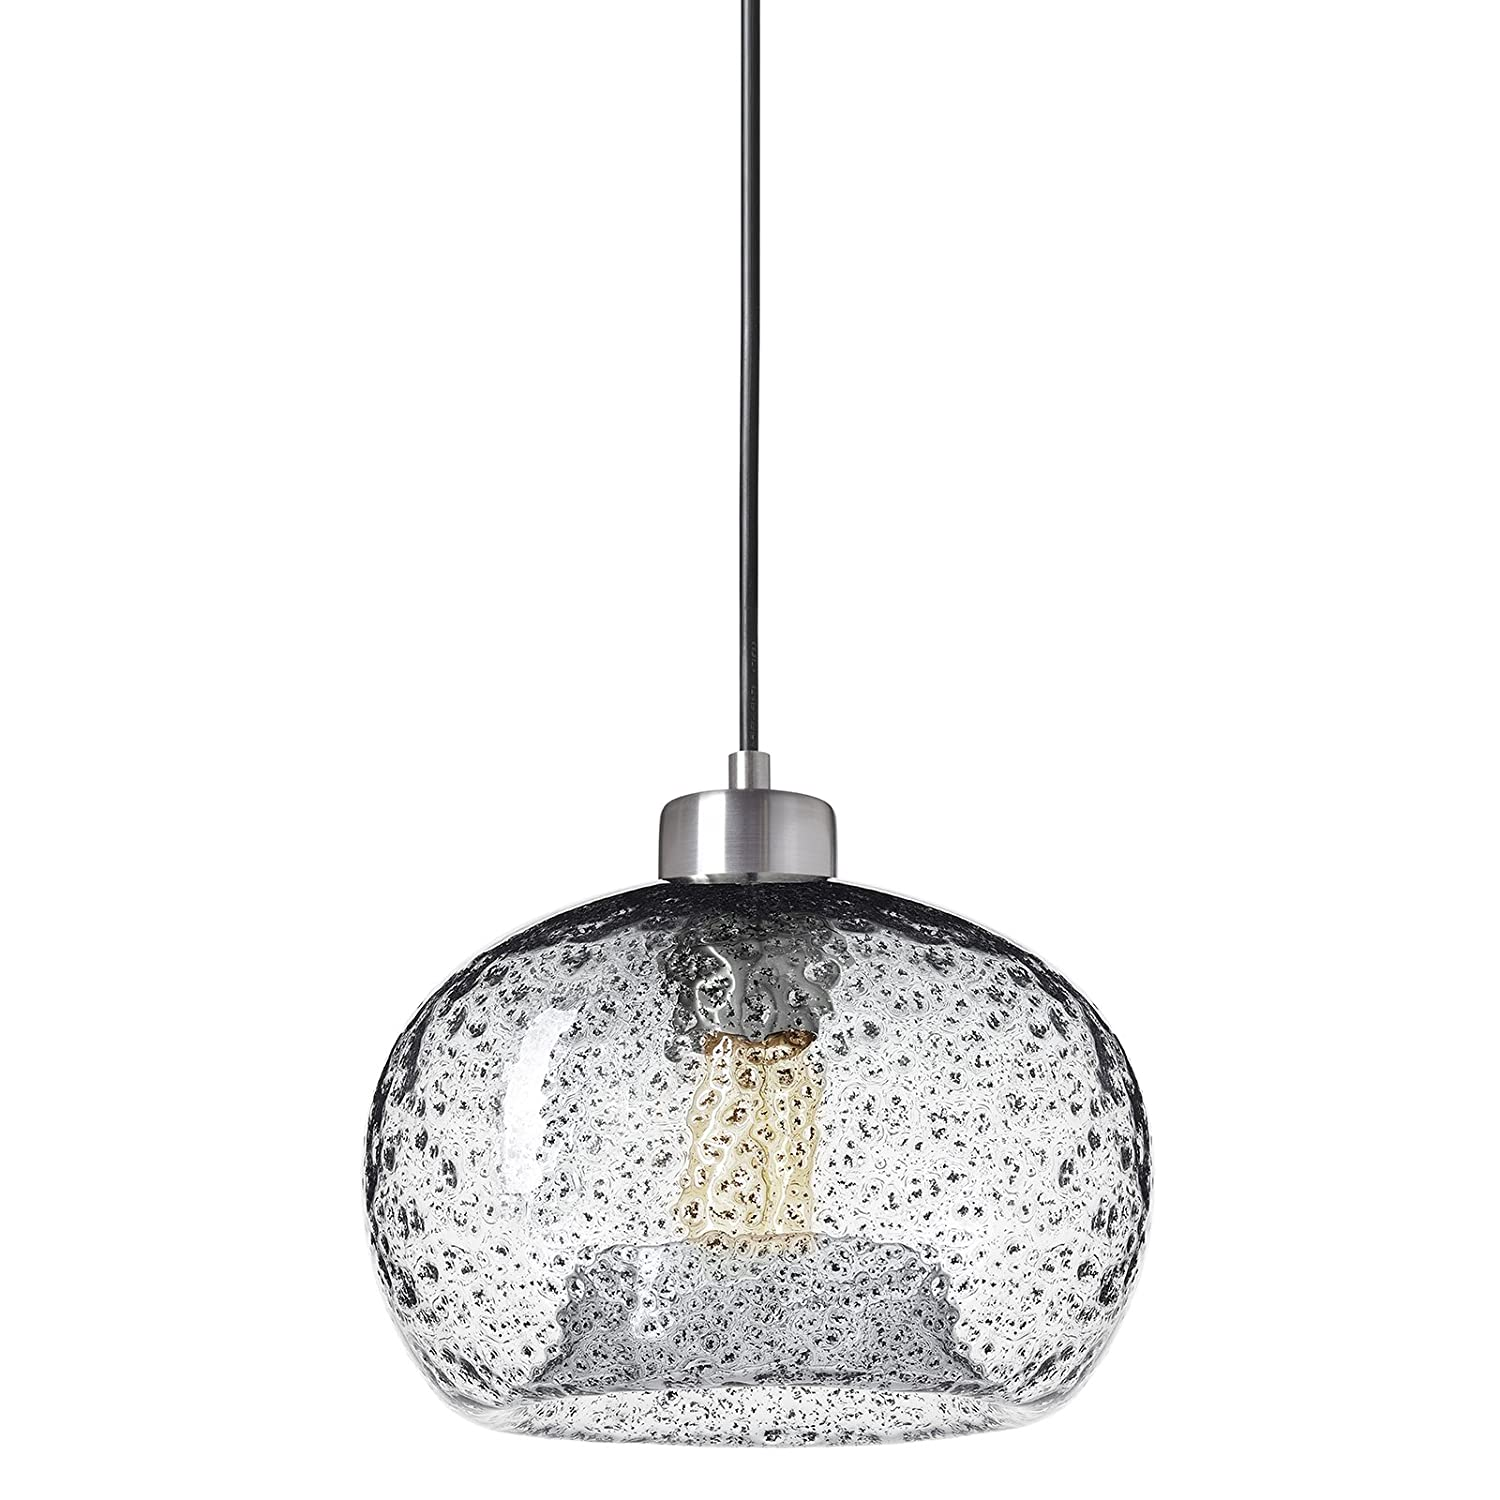 Casamotion Pendant Light Handblown Glass Drop Ceiling Lights, Rustic Hanging Light Seeded Glass with Black Sand Powder (Brushed Nickel, Clear)